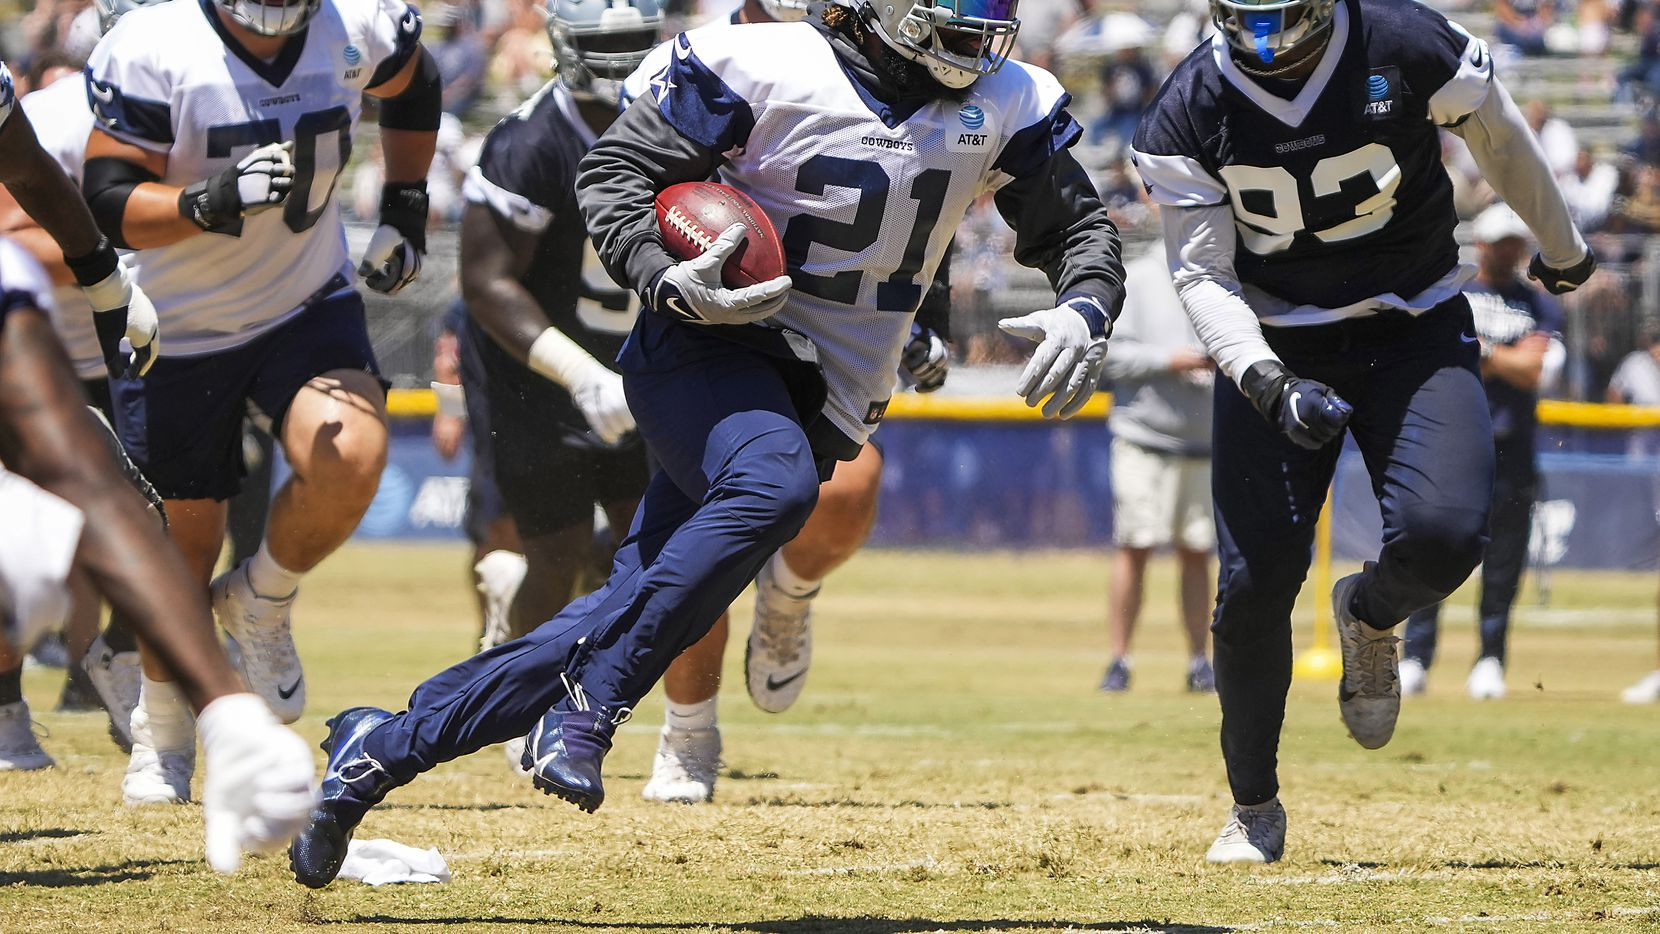 Dallas Cowboys running back Ezekiel Elliott (21) runs into the end zone past defensive end Tarell Basham (93) during a practice at training camp on Tuesday, Aug. 3, 2021, in Oxnard, Calif.